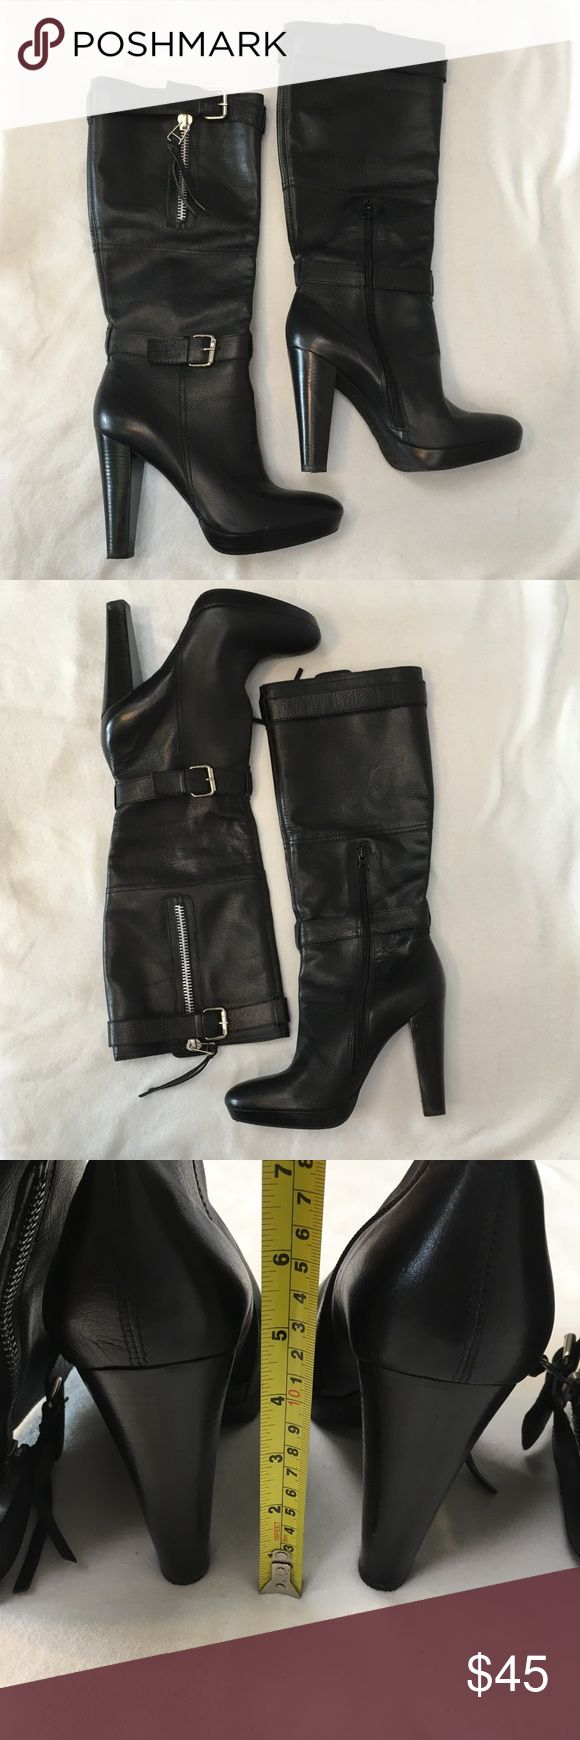 "Carlos Santana Heel Platform Black Biker Zip Boots Carlos Santana Heel Platform Black Biker Zip Boots Good Preloved Condition-see pics 4.5"" Heel Size: 10M  Reach out with any questions or offers, happy poshing!  Carlos Santana Shoes Heeled Boots"